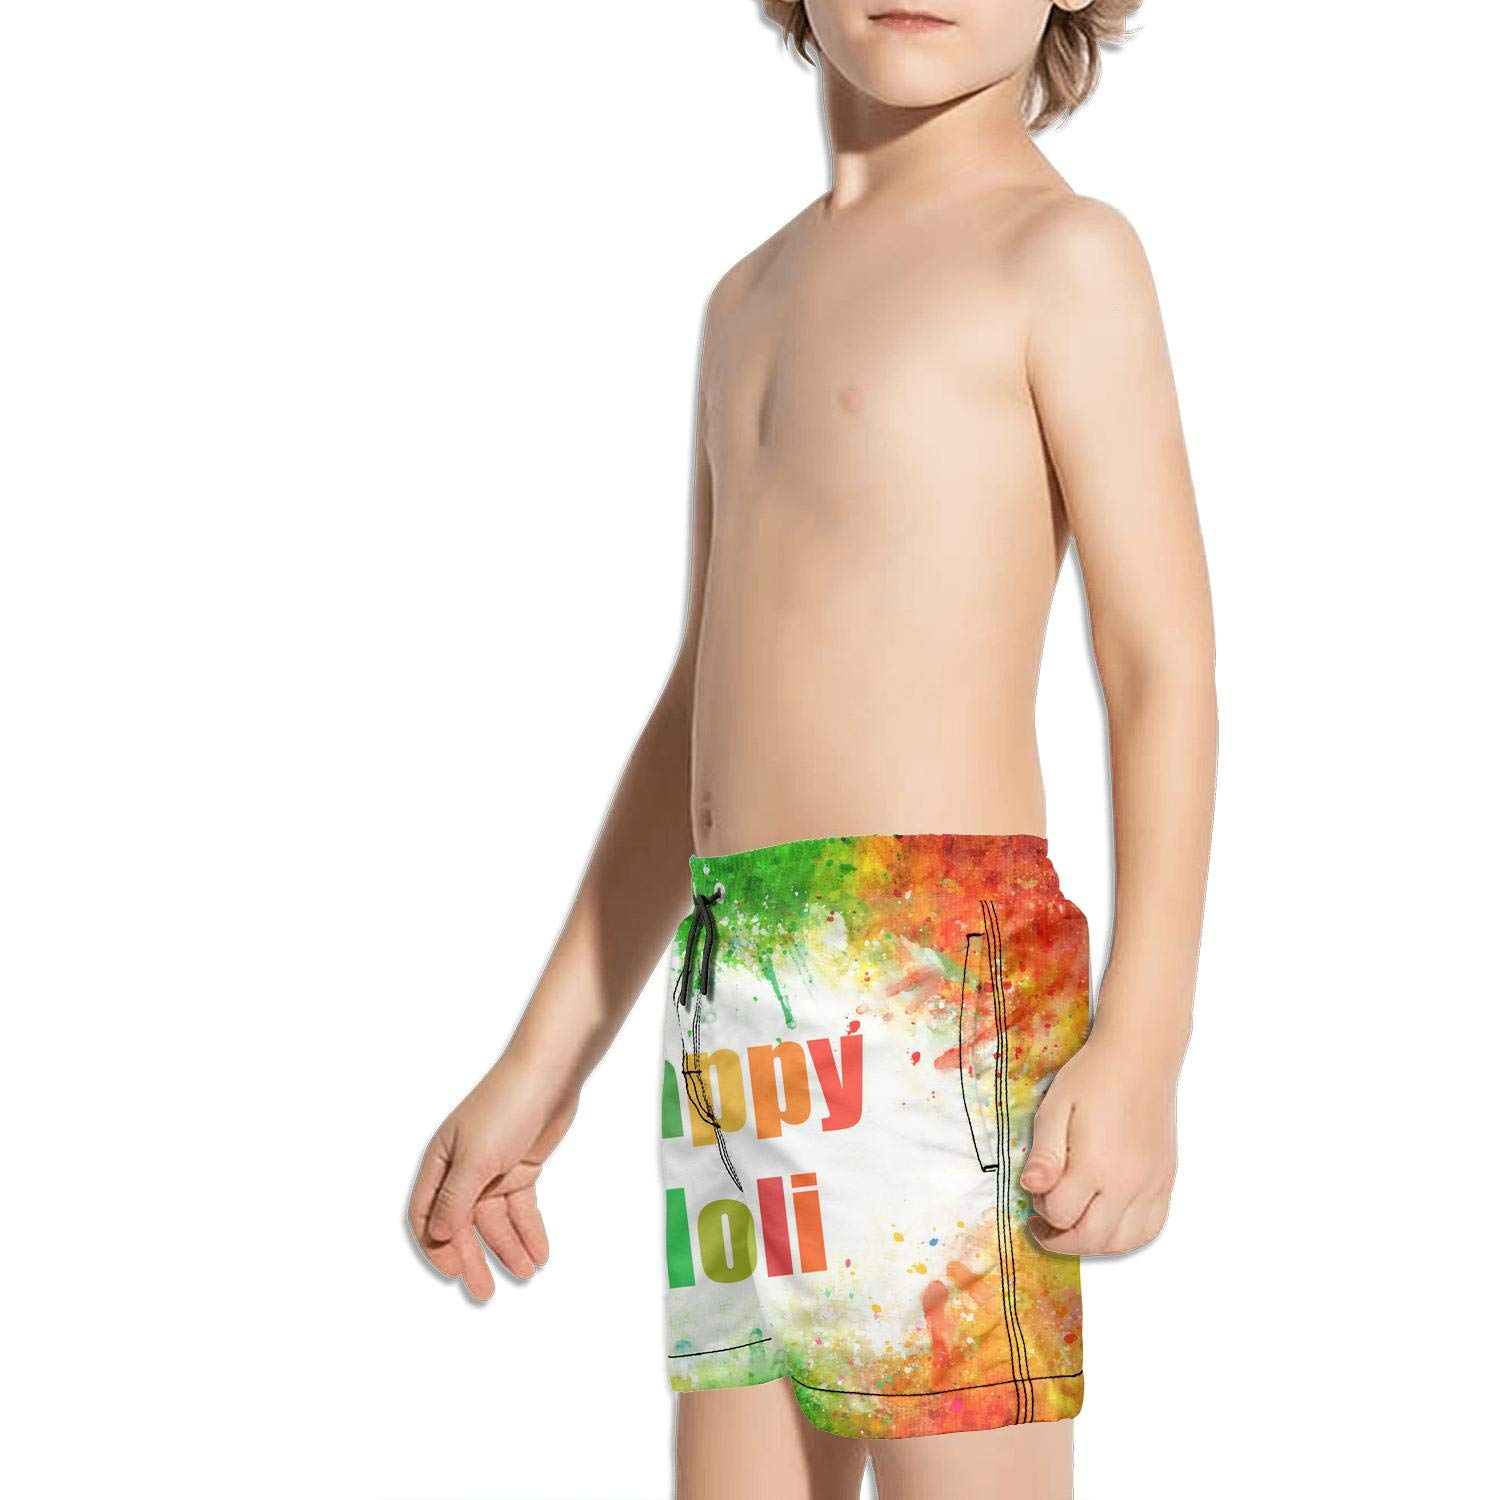 Happy Holi Colorful Background Poster Kids Quick Dry Sporty Vintage Swim Shorts